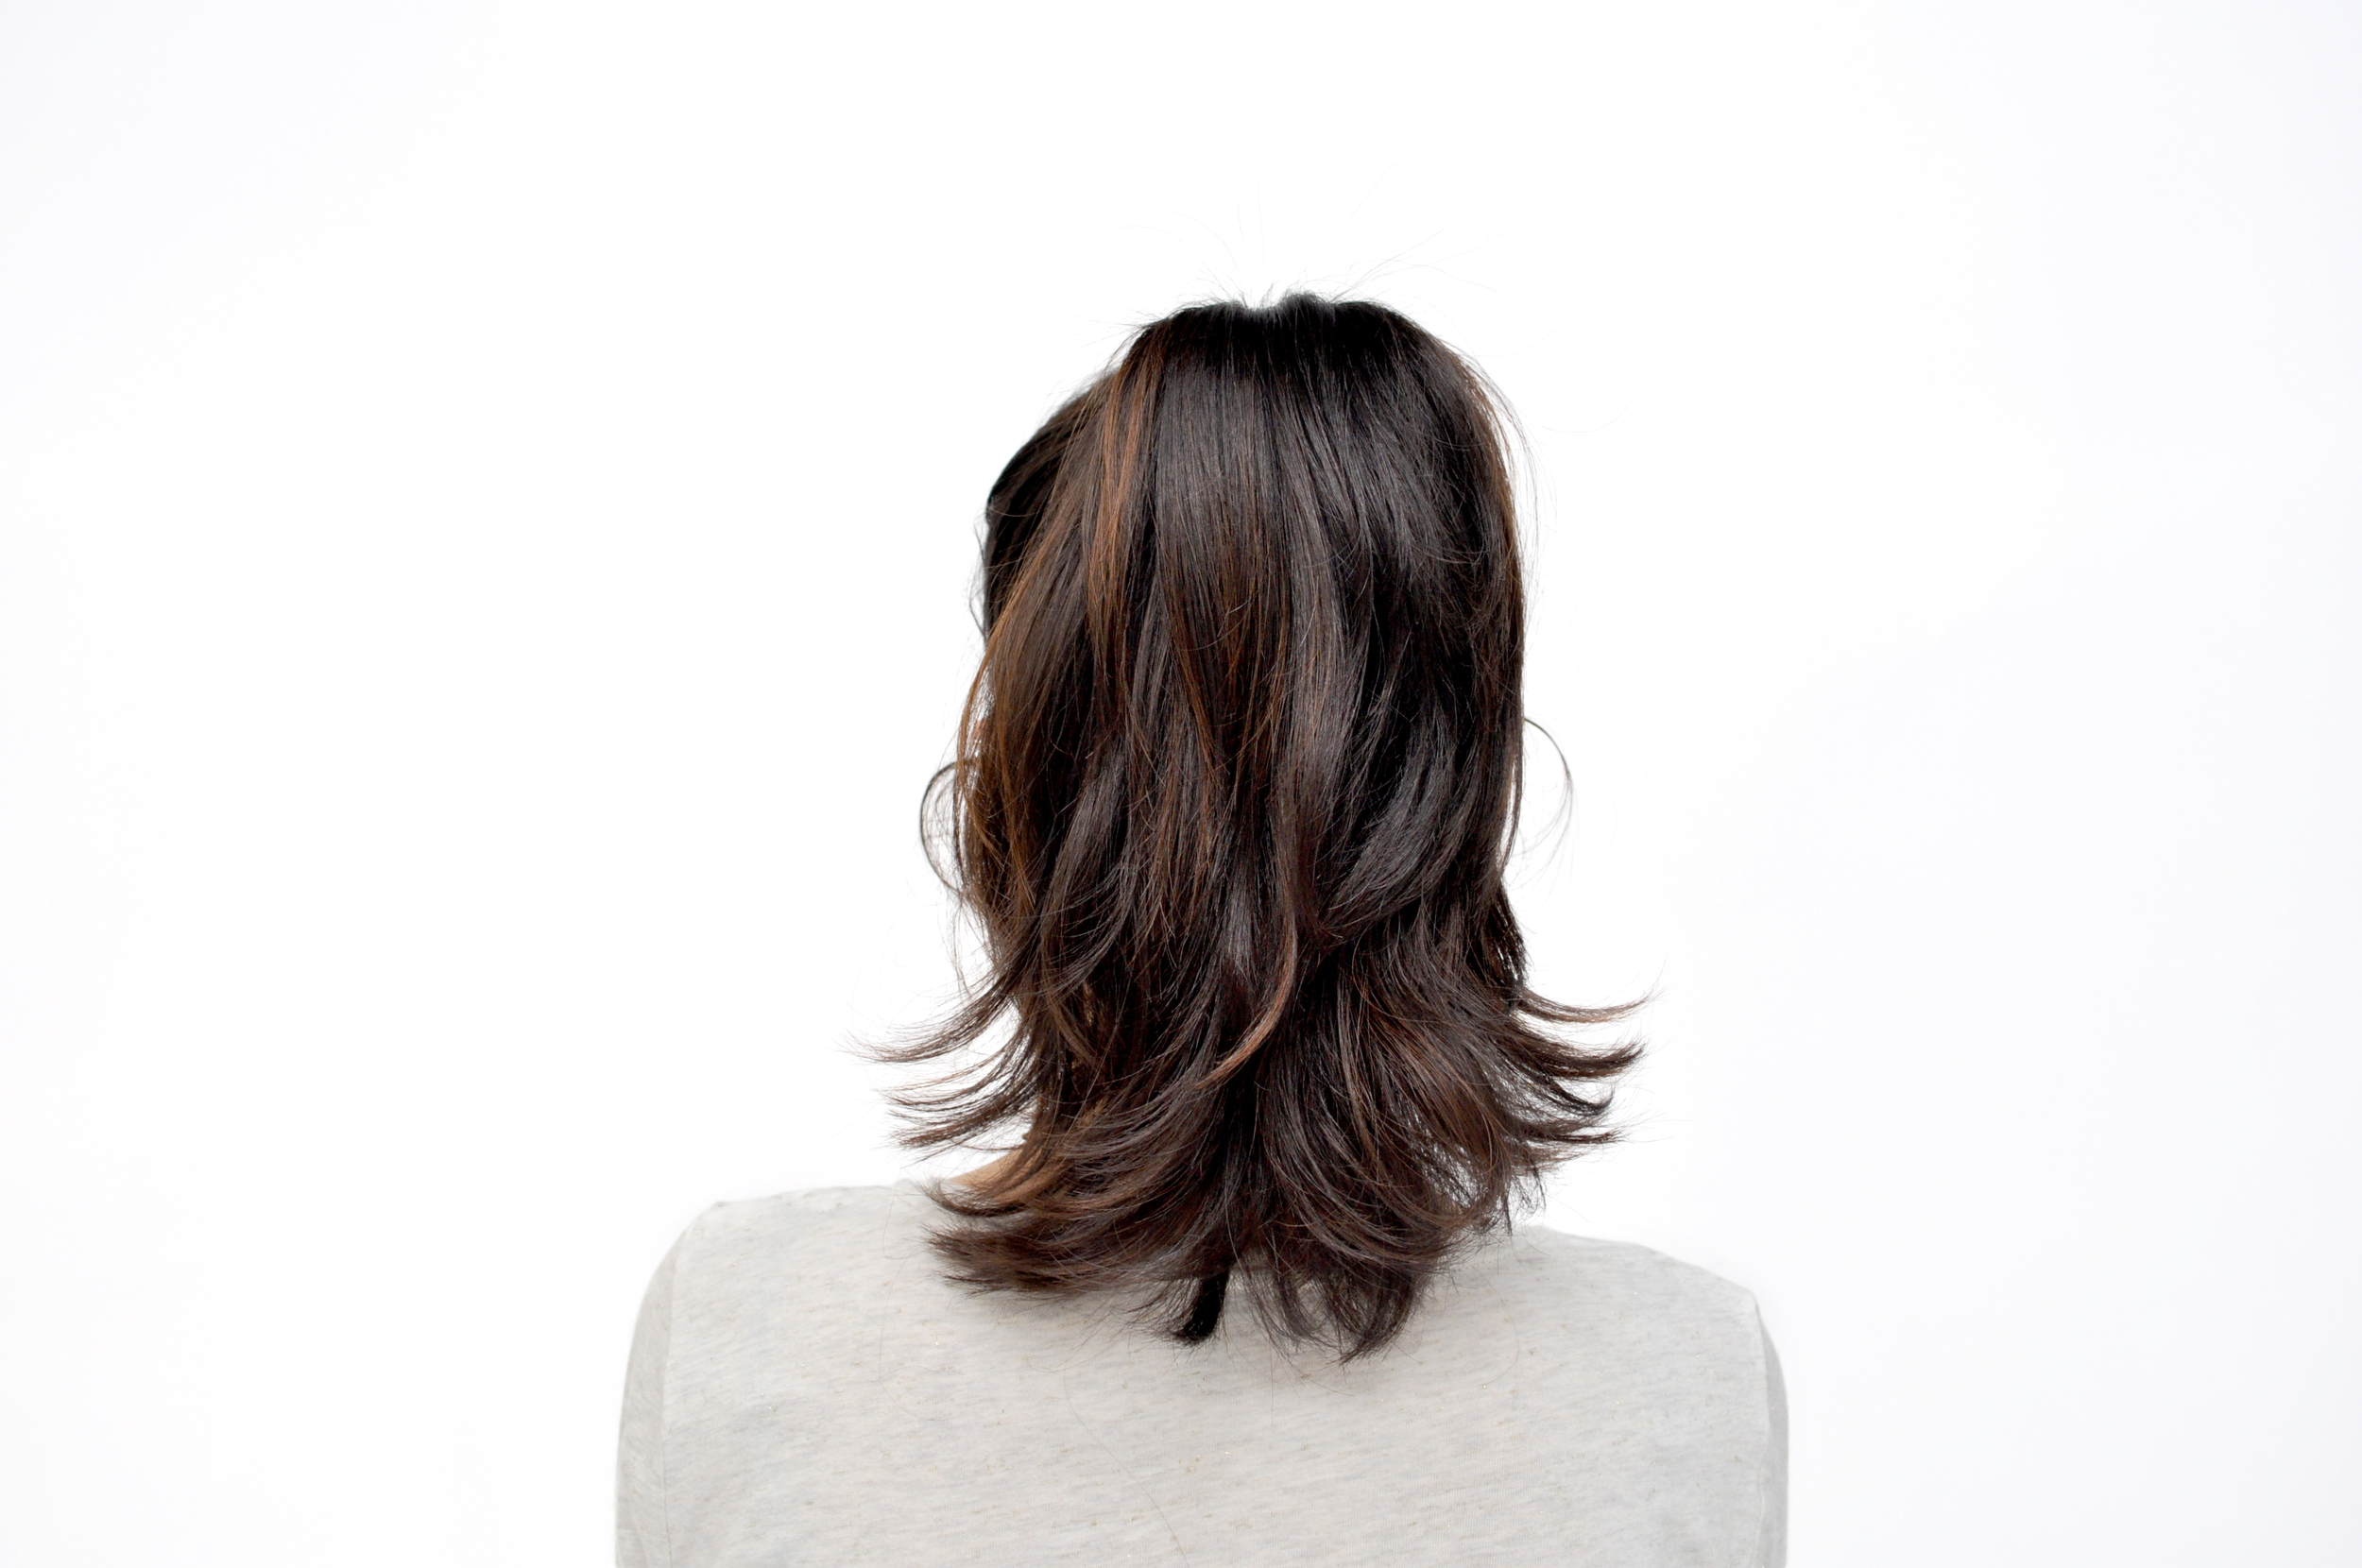 Brush your hair into a high pony tail. Make sure to get it to the very top of your head!